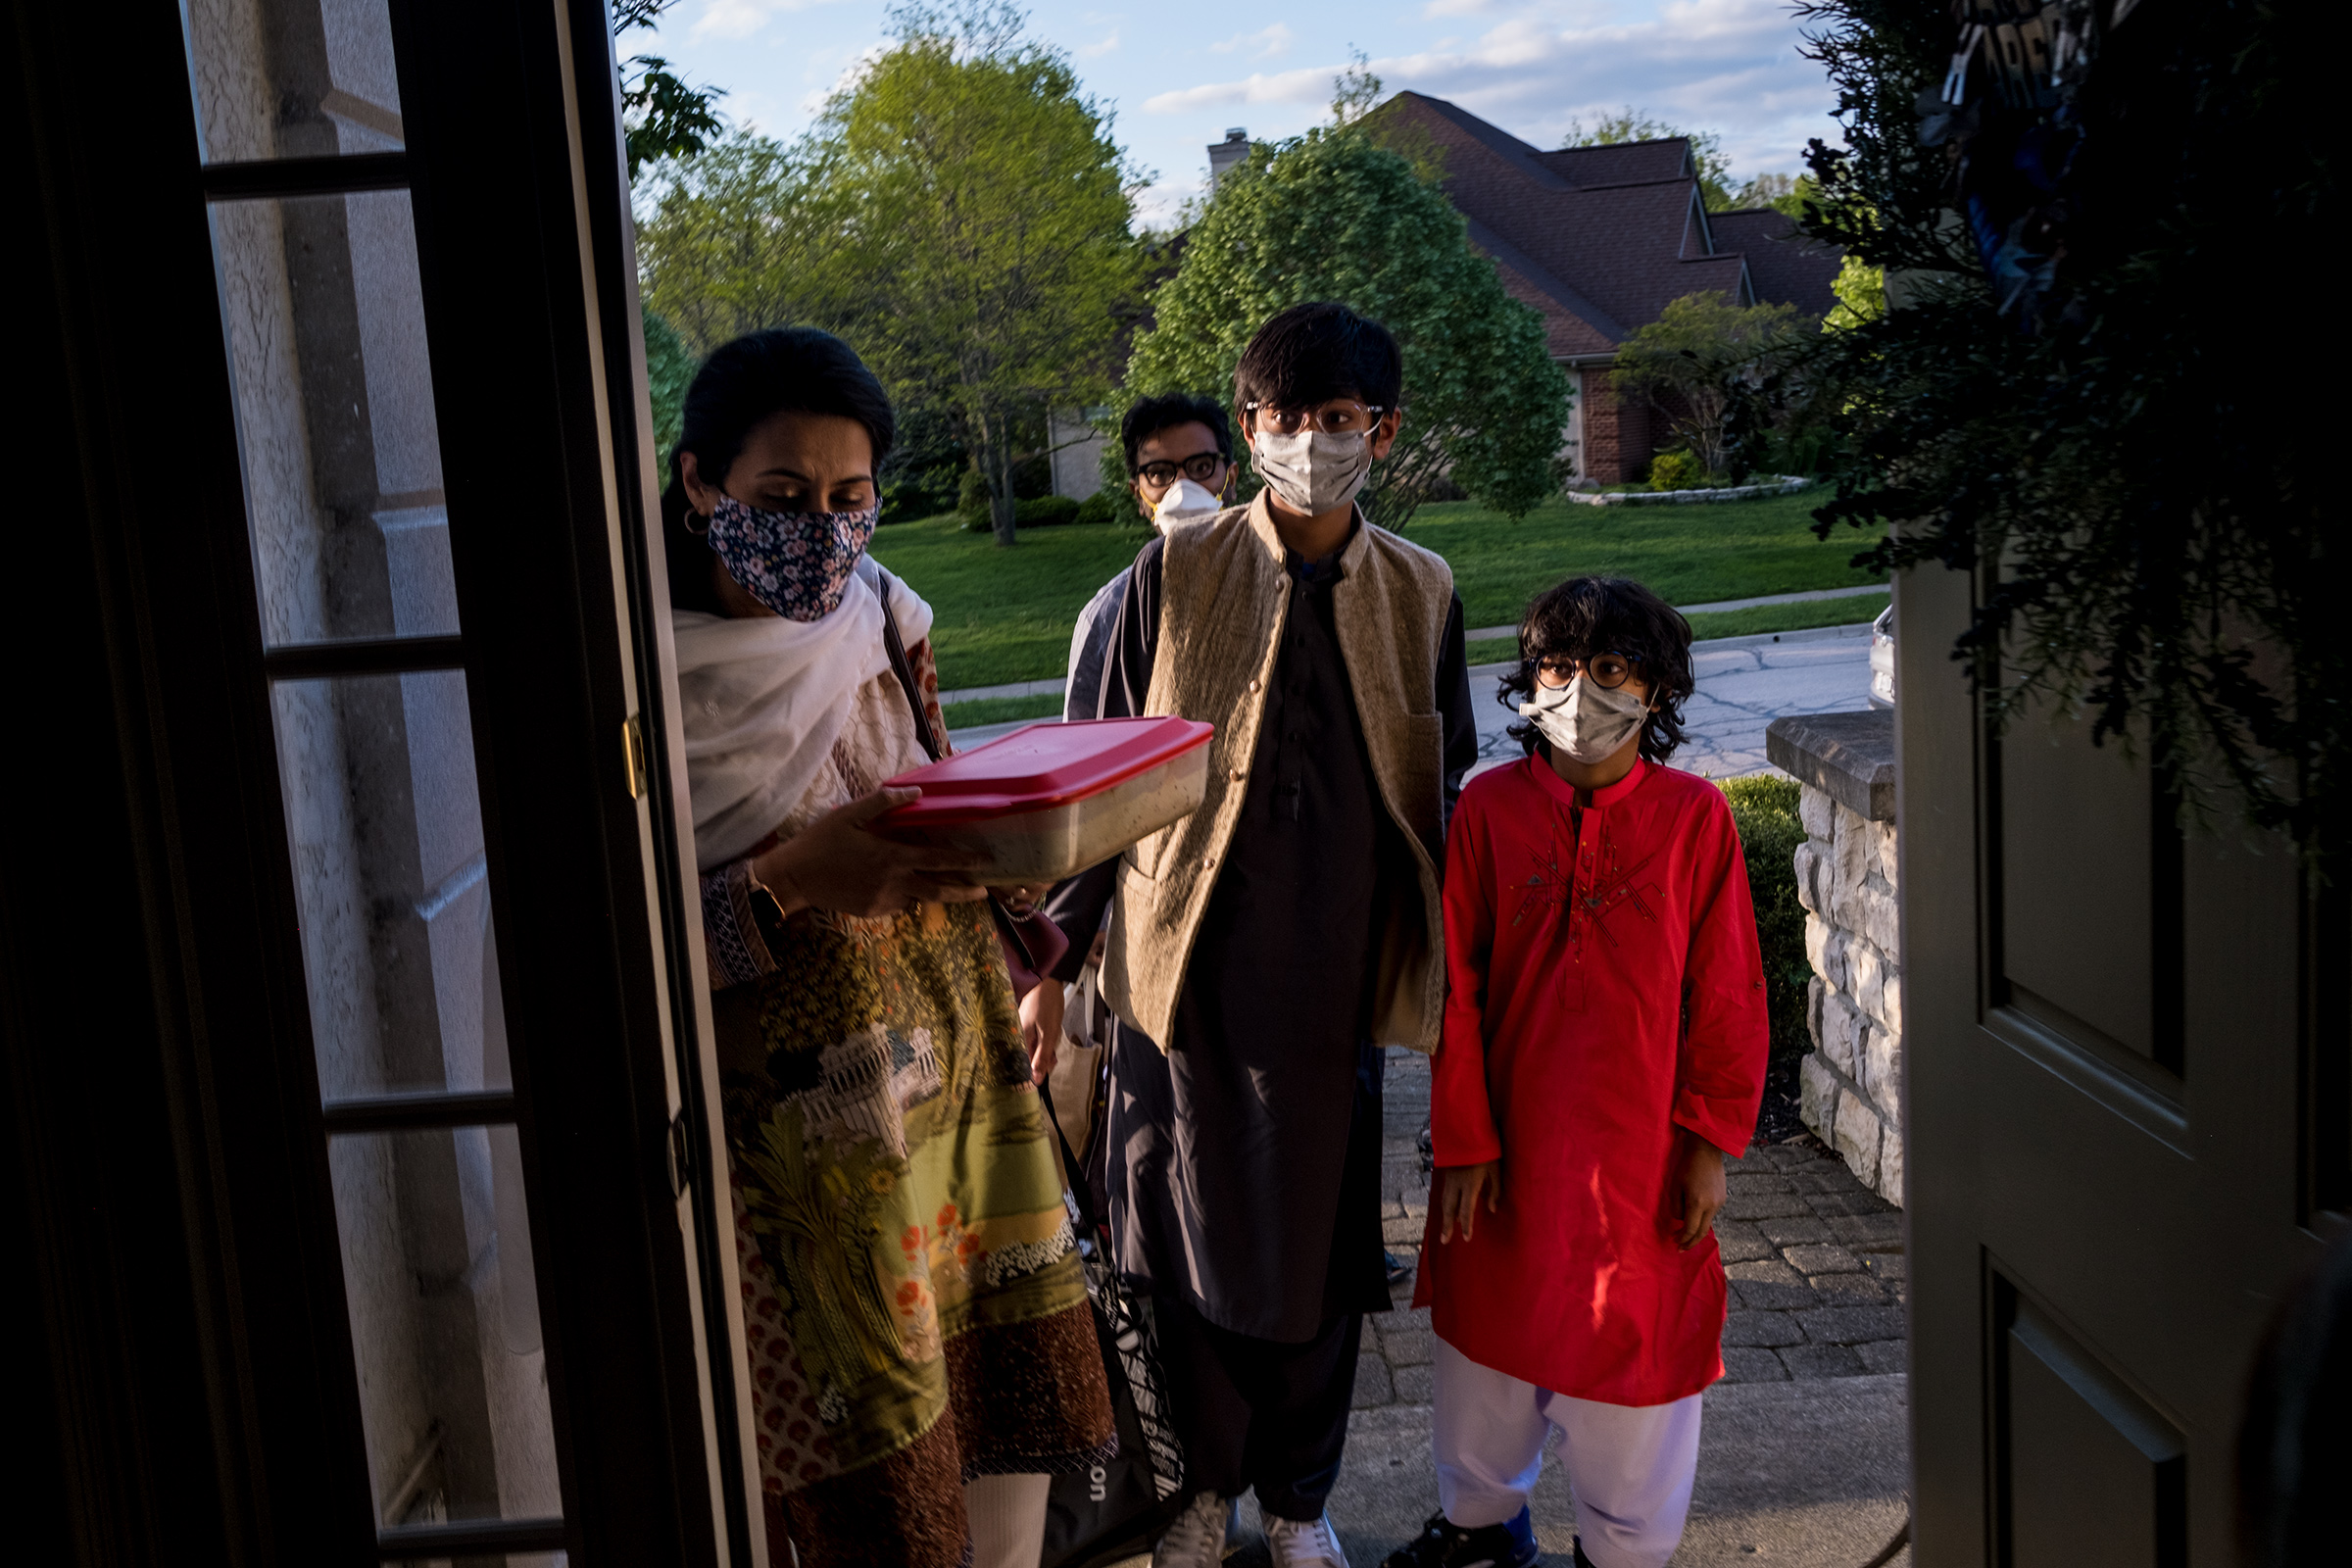 From left, Afsheen Rizvi, 45, her husband Tariq Sayed Rizvi, 45, behind, and their two sons Mahad, 12, and Arhem, 8, arrive at potluck dinner at their friend's home in Dublin, Ohio on May 5.